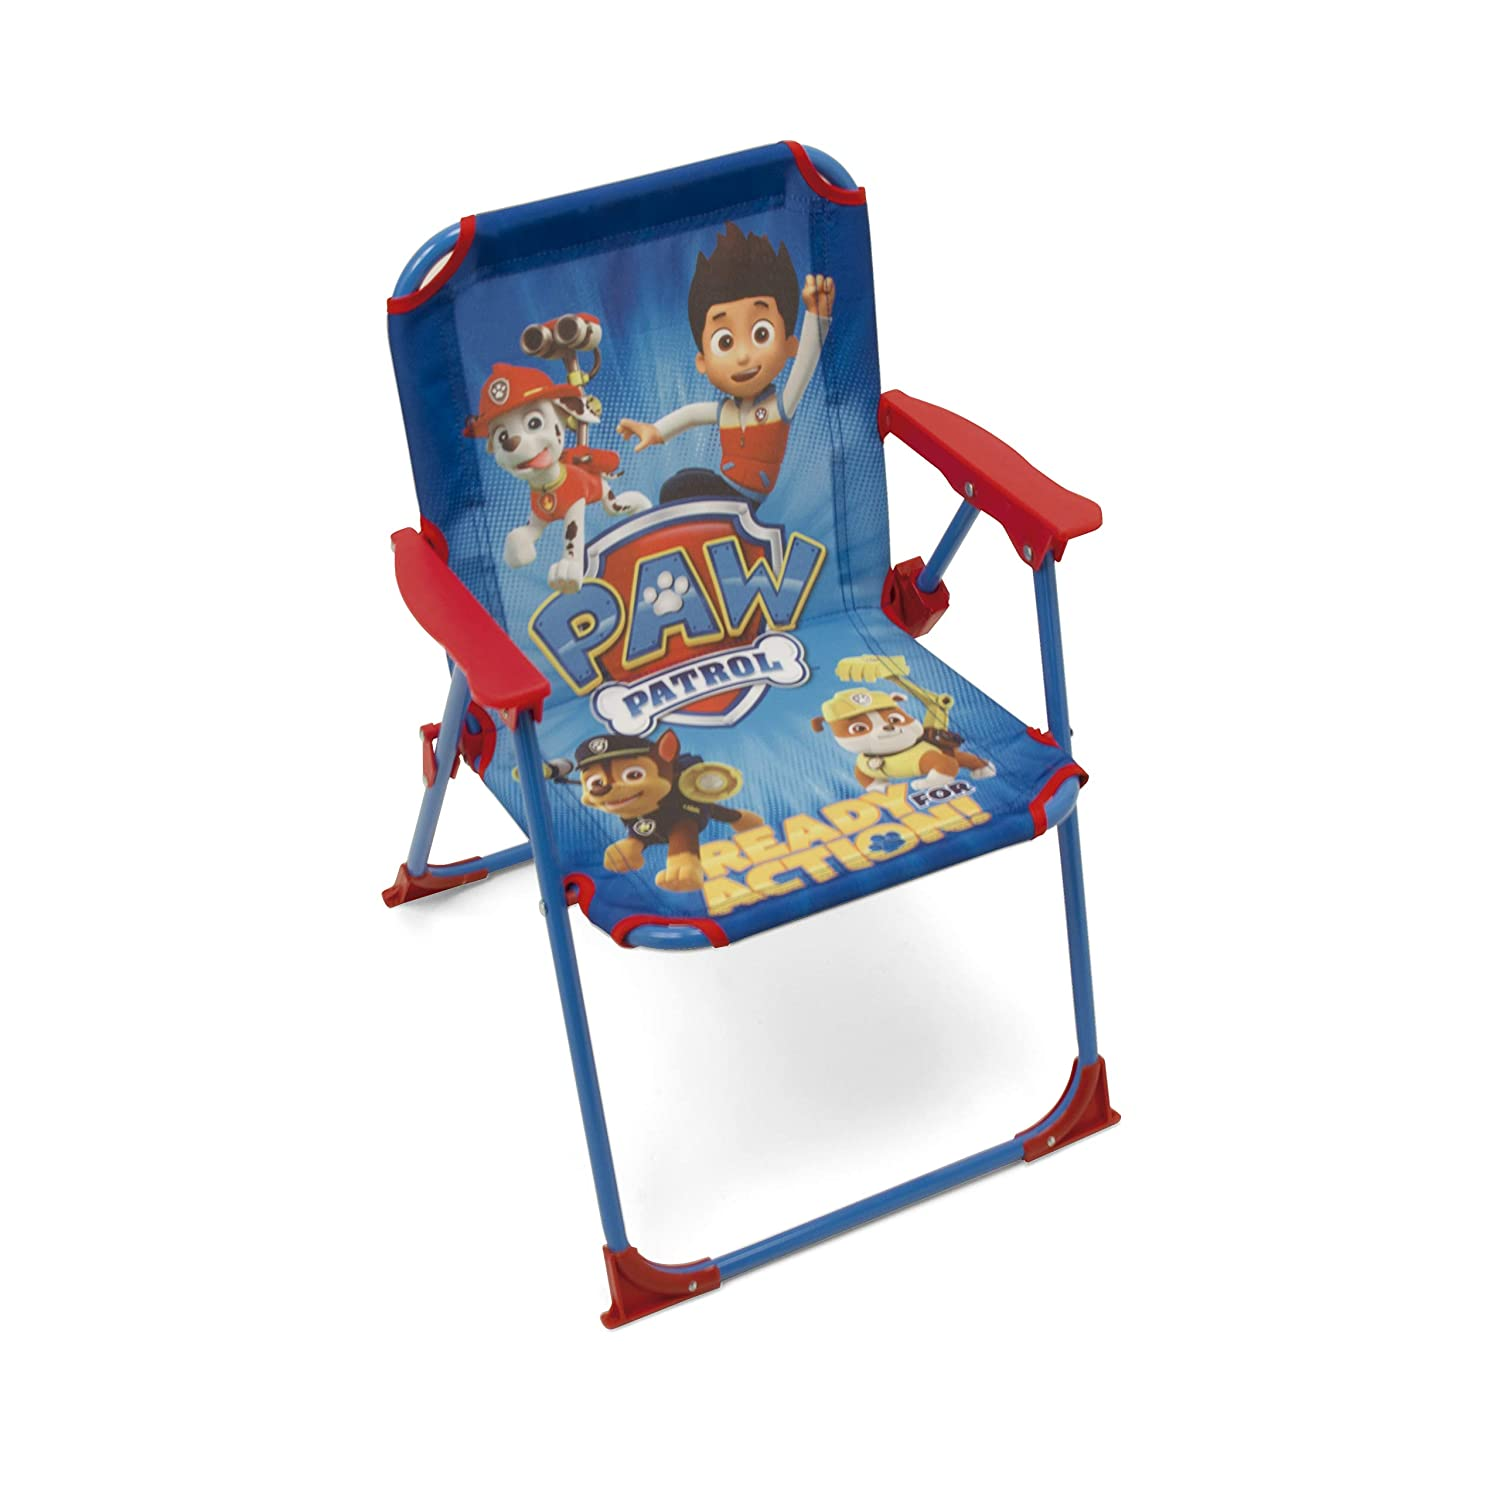 Arditex Folding Chair for Child Licensed pat' Patrol in Metal, Size: 38x32x53 cm, Material, Fabric, 38 x 32 x 53 cm PW9506